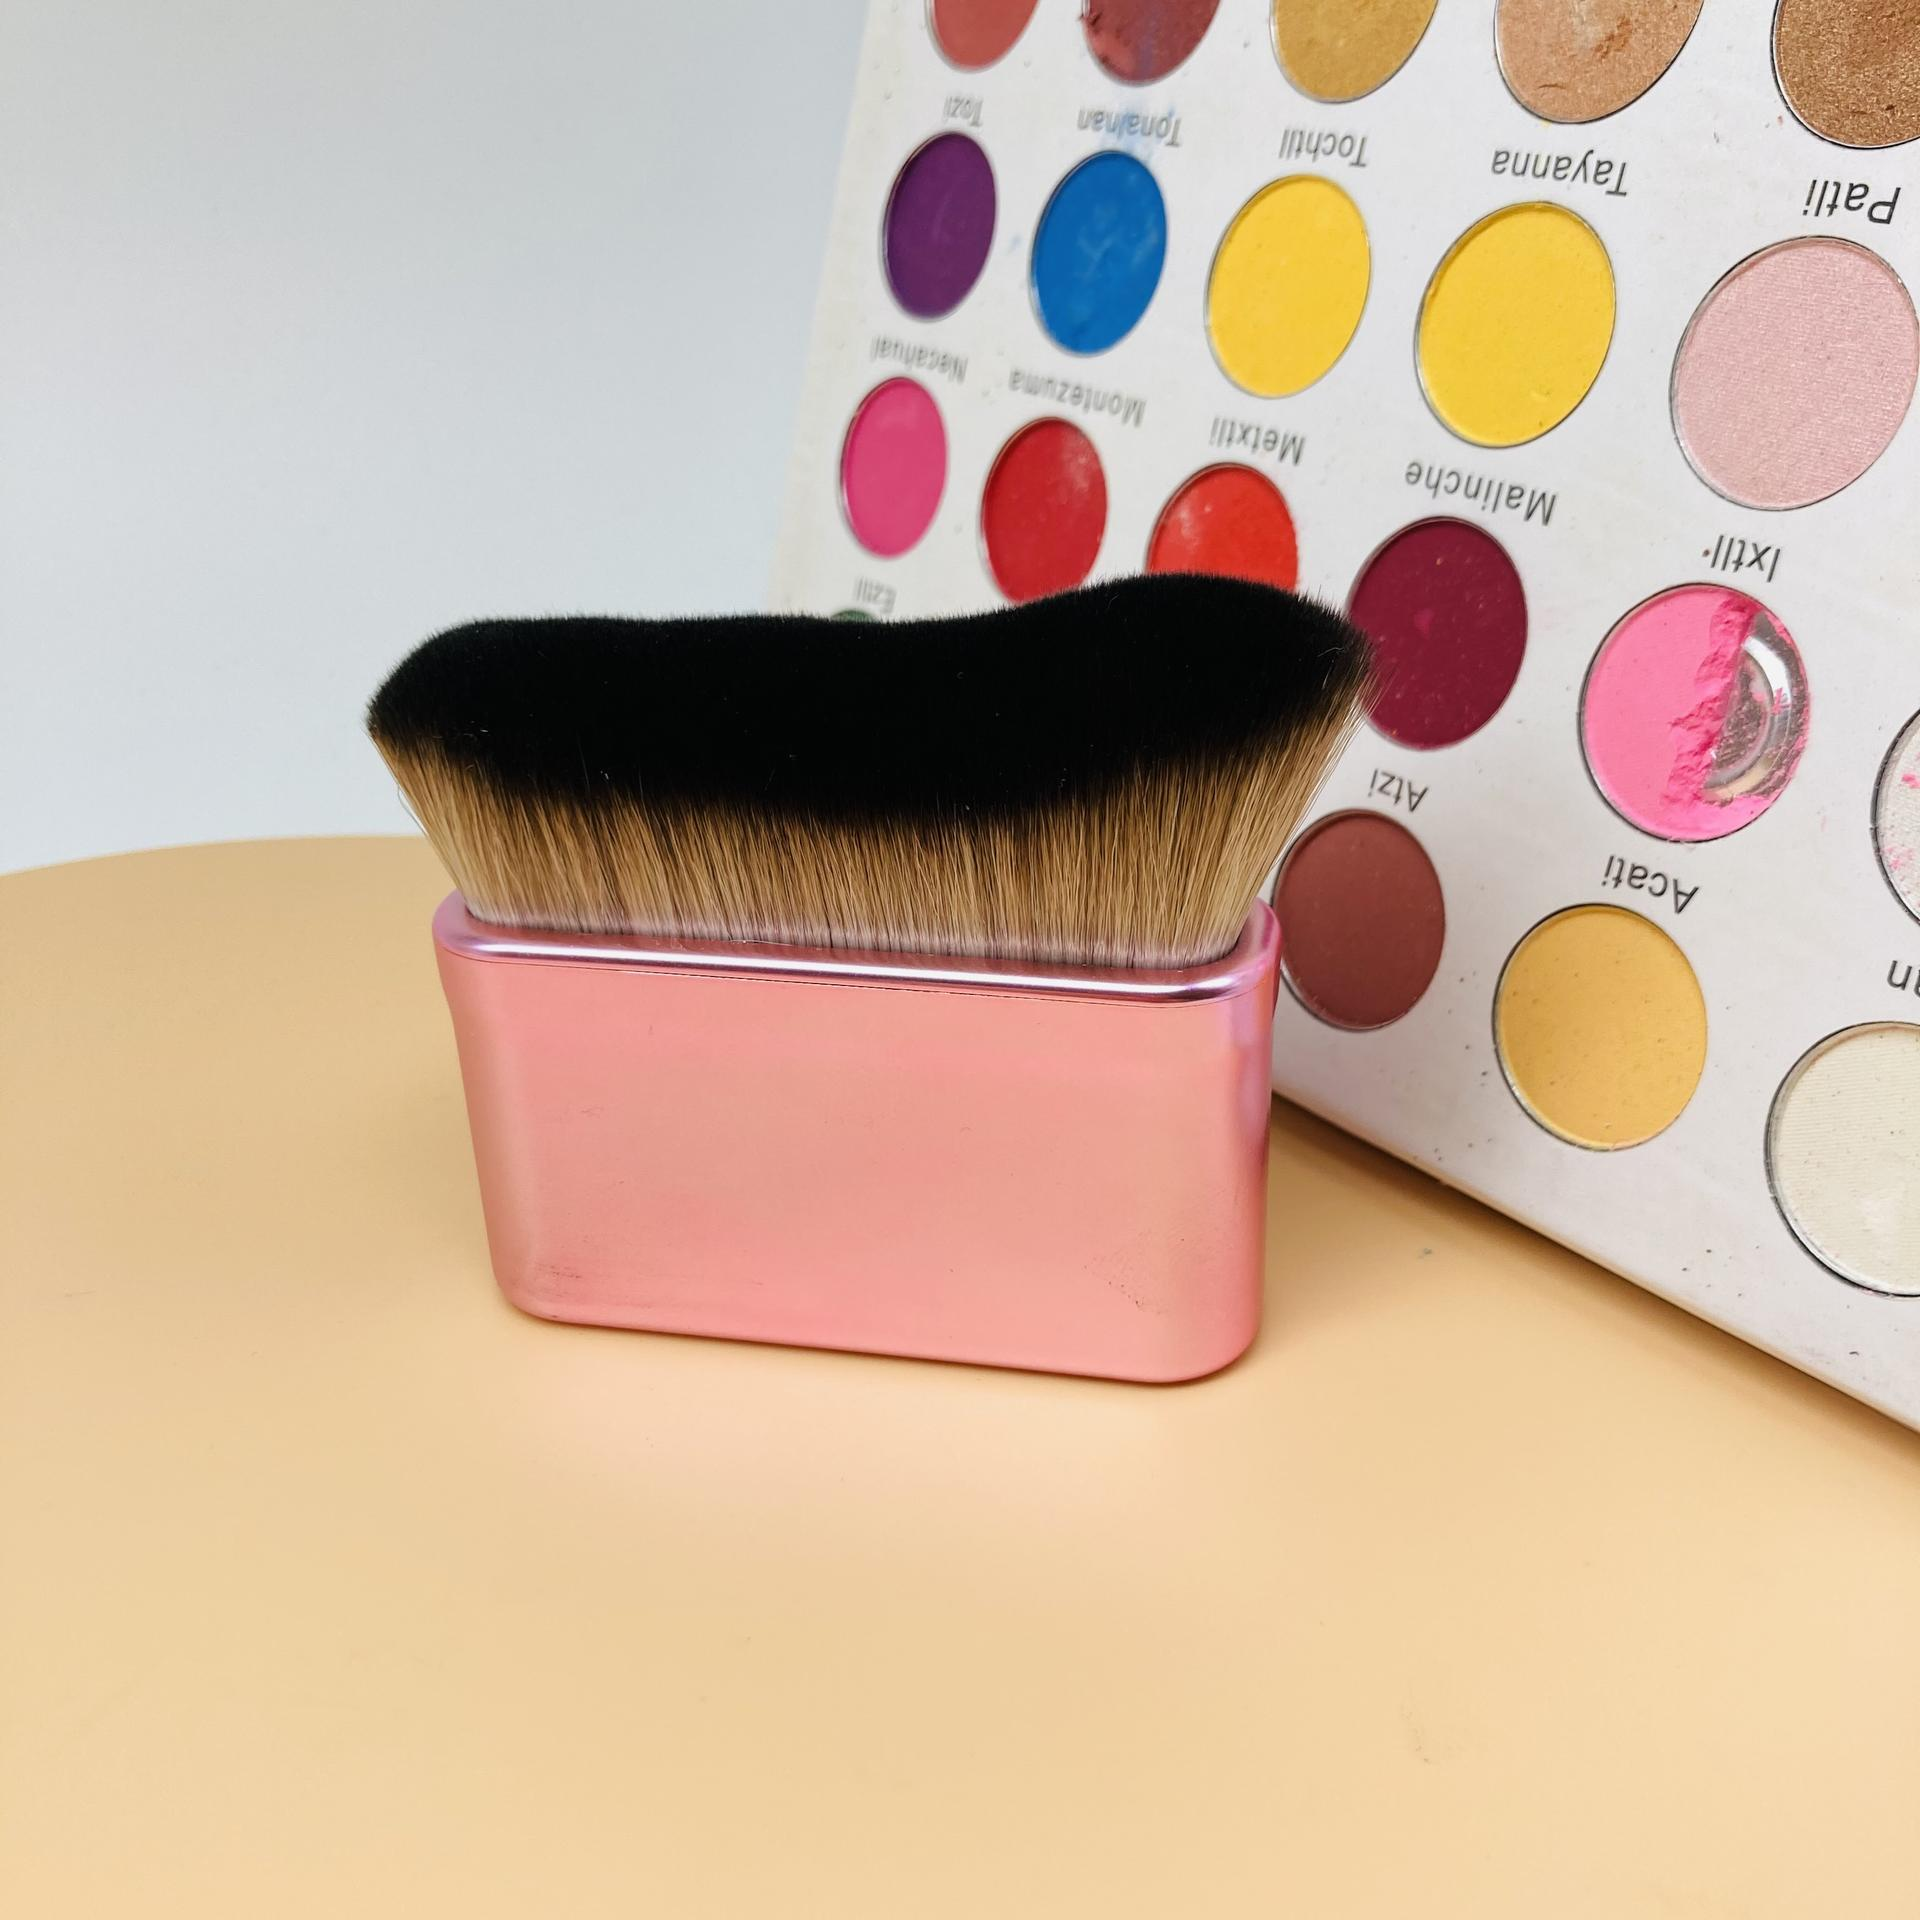 Custom make up brushes high quality professional pink make up brushes private label